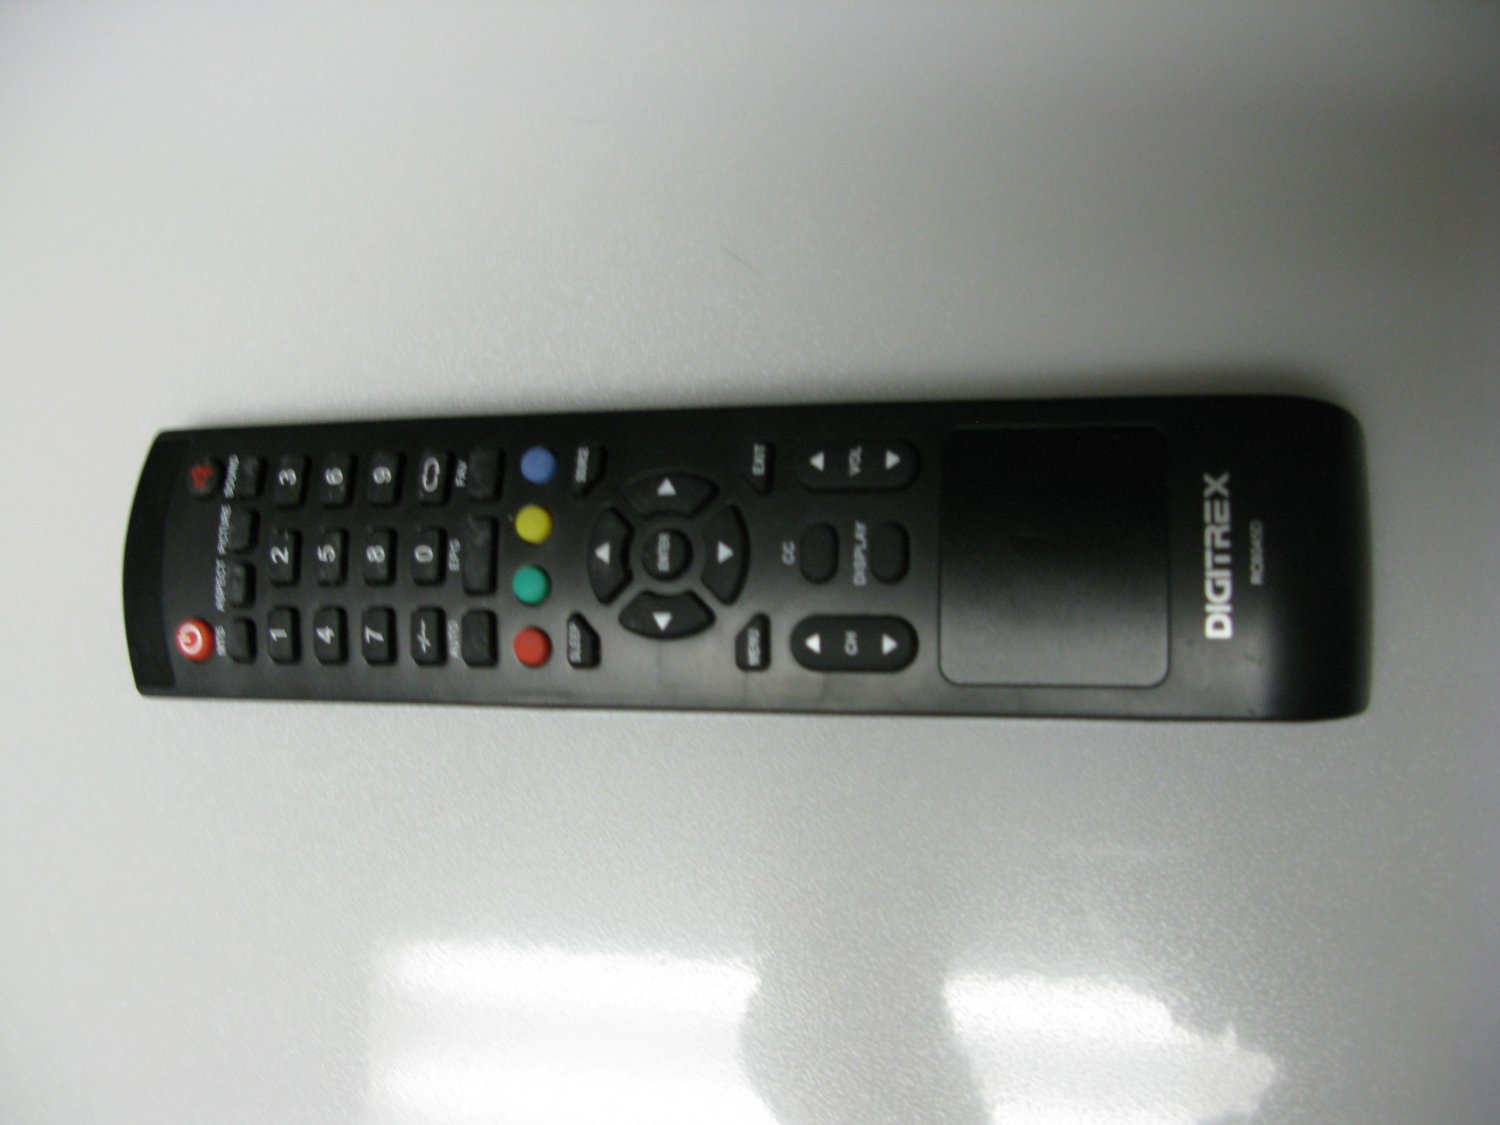 Original Digitrex RC6045D TV Remote Control